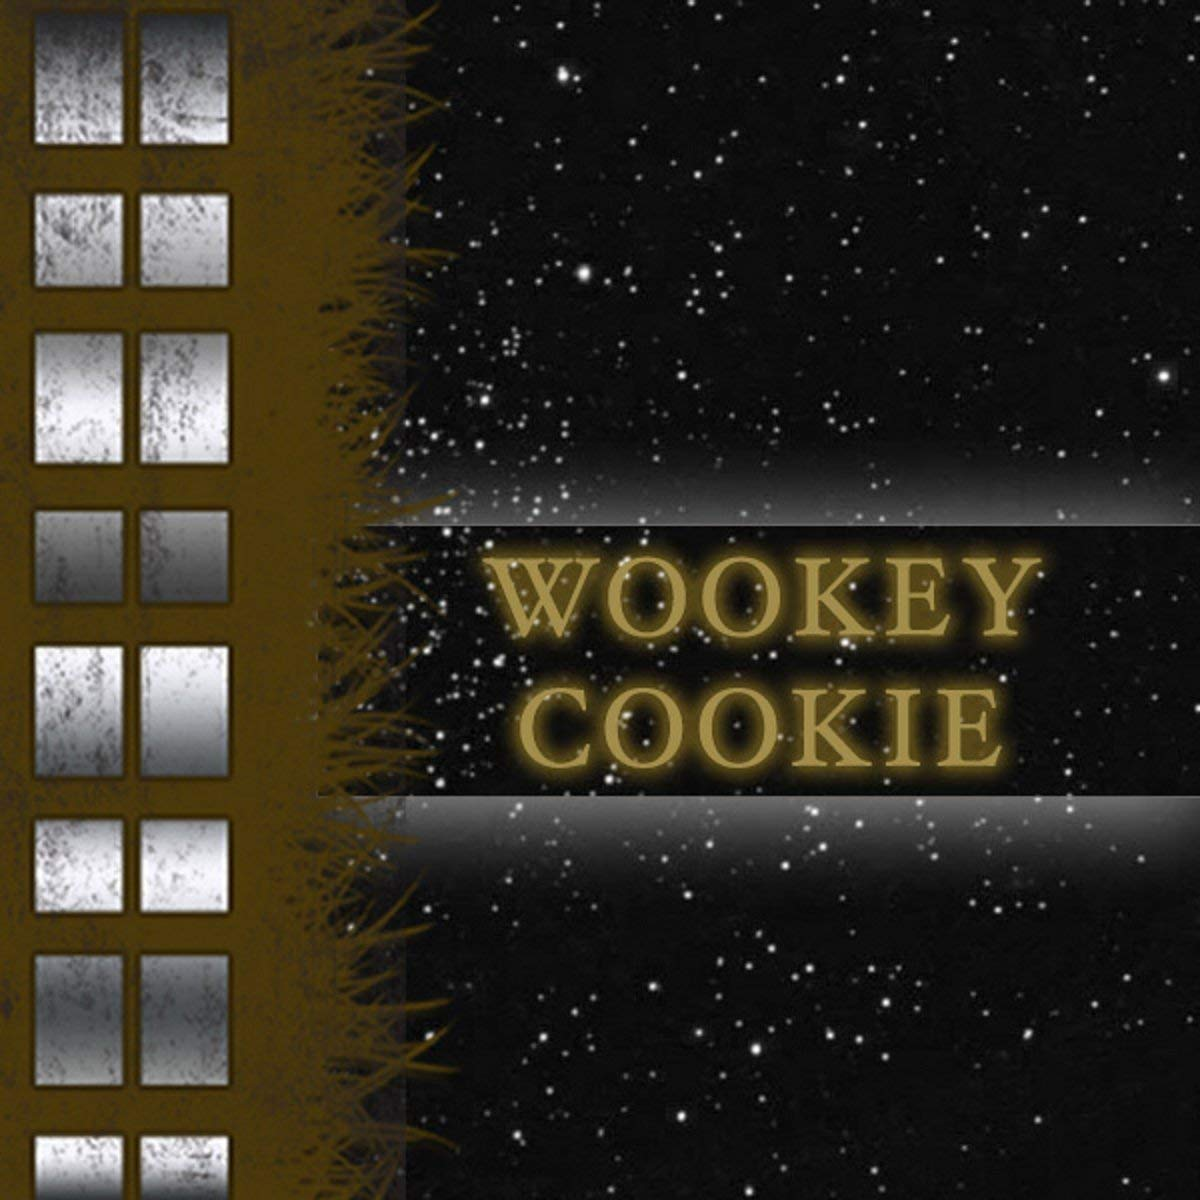 Wookey Cookie【The Vapor Hut(ベイパー ハット)】